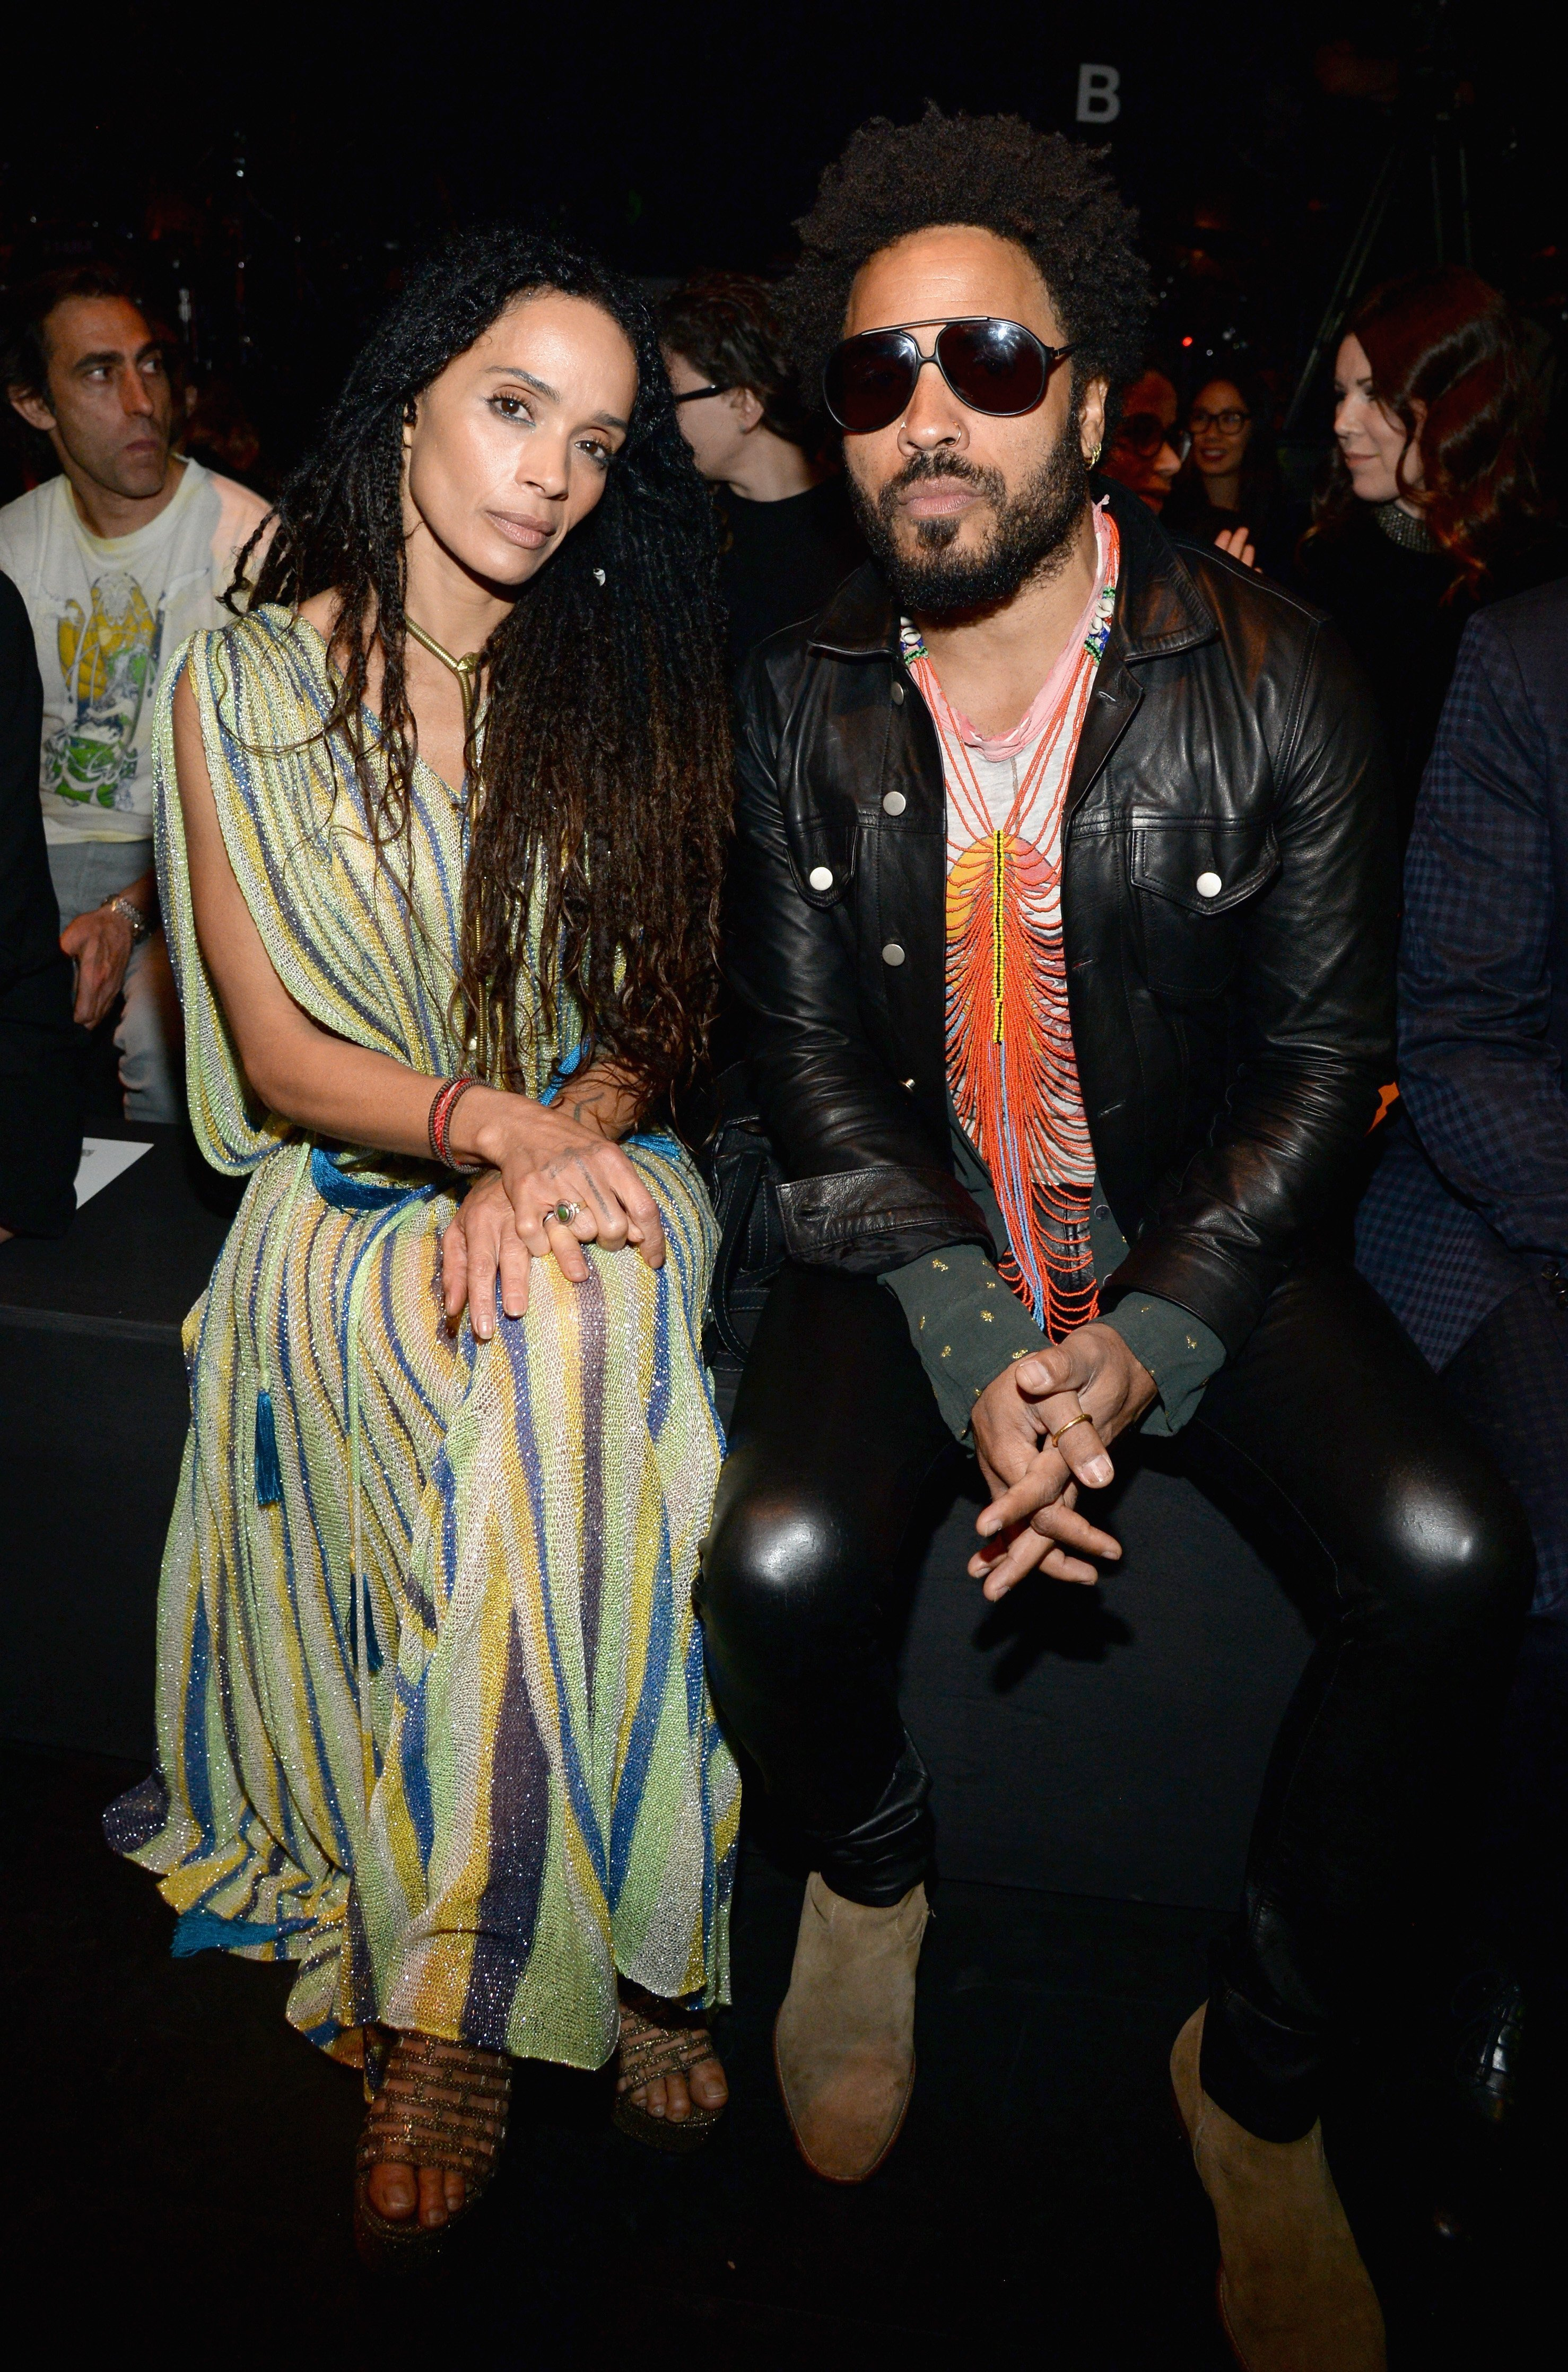 Lisa Bonet and recording artist Lenny Kravitz attend Saint Laurent at the Palladium on February 10, 2016 | Photo: GettyImages